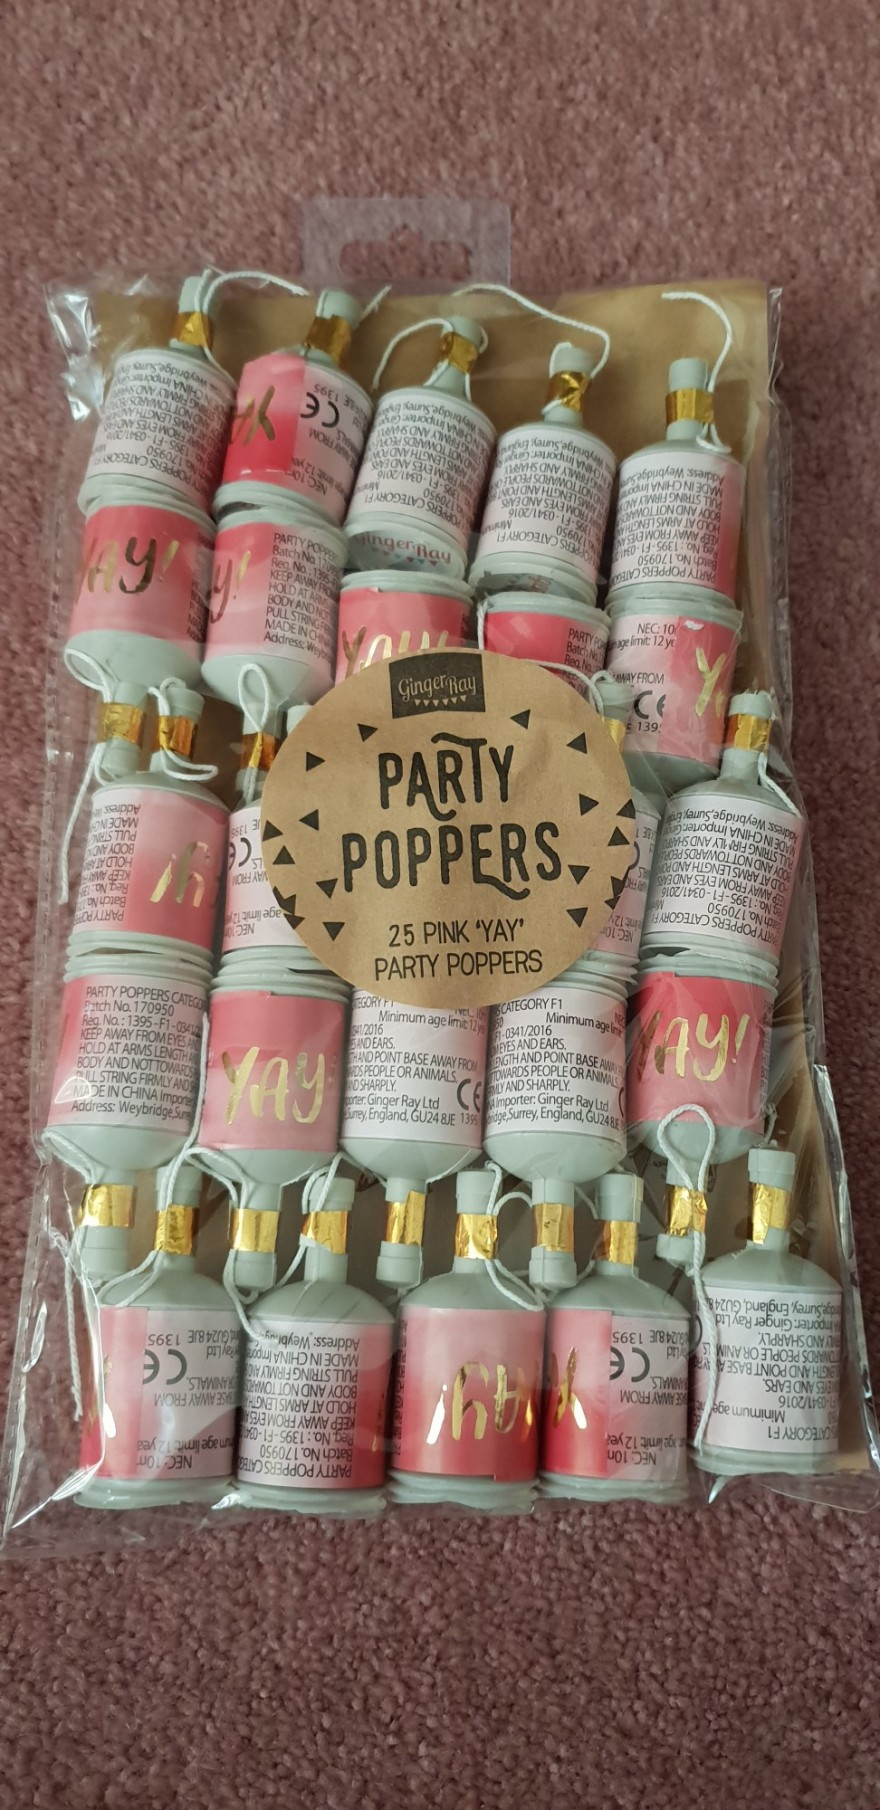 Party Poppers 1